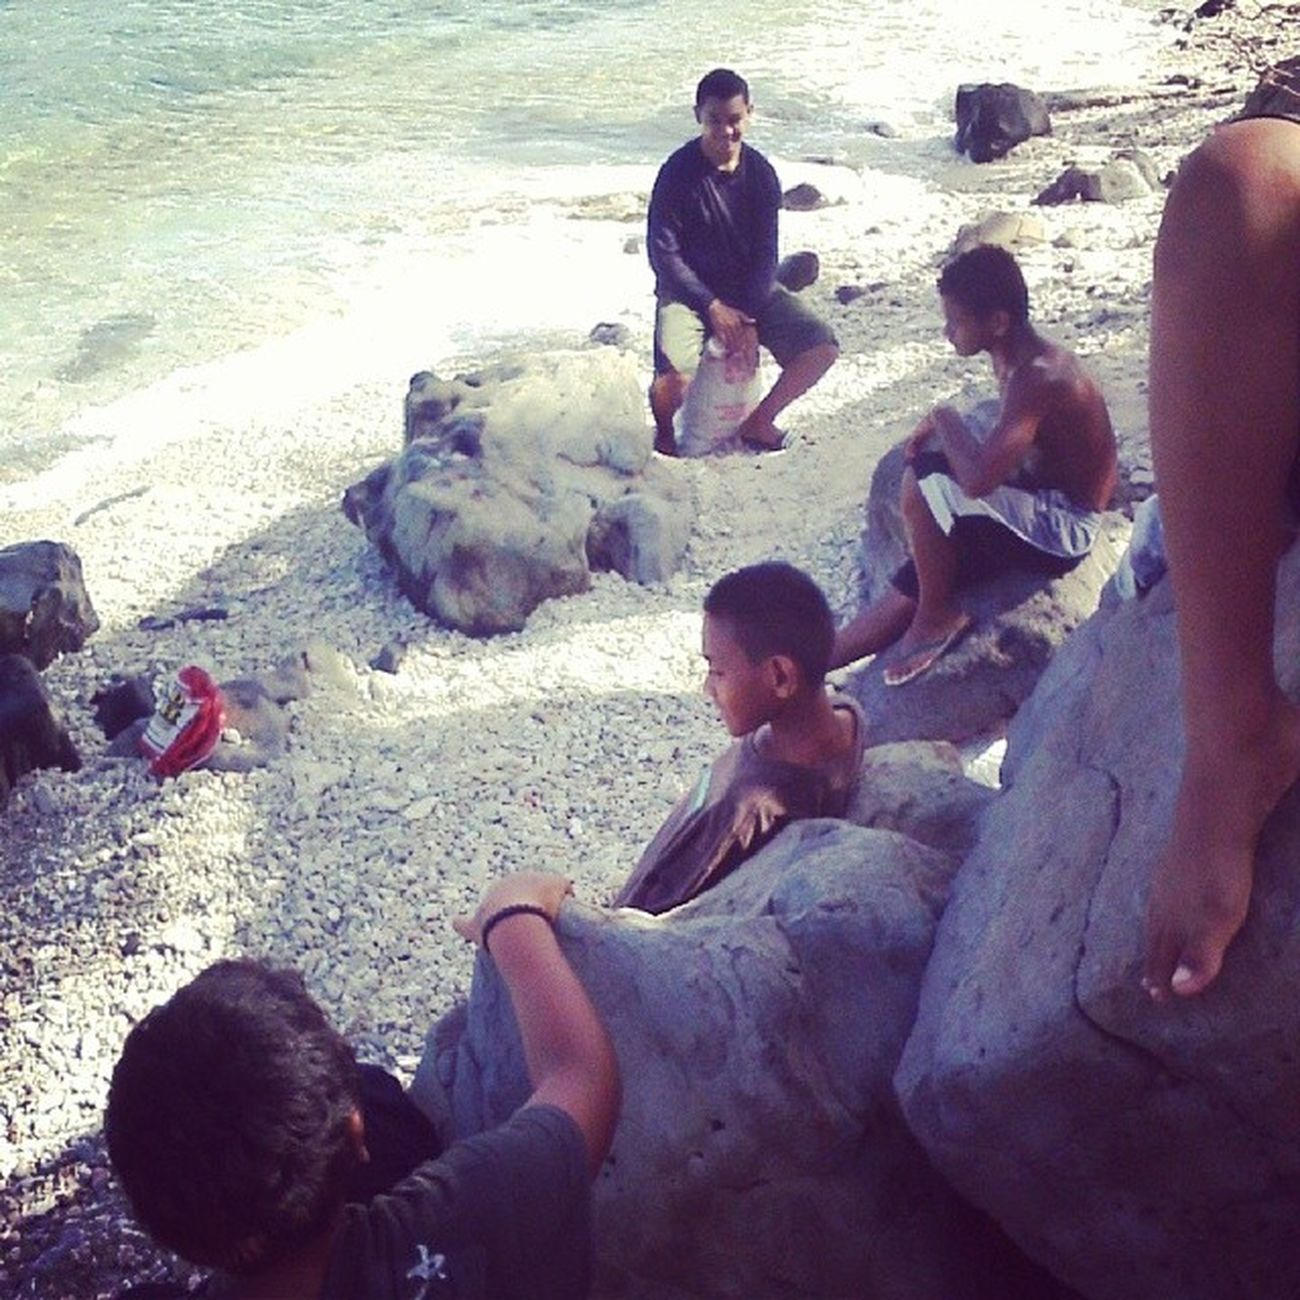 ;our la'u ma'a from yesterday with cousin. MyMain Mycousin Theboys Rockingit BoyJobs